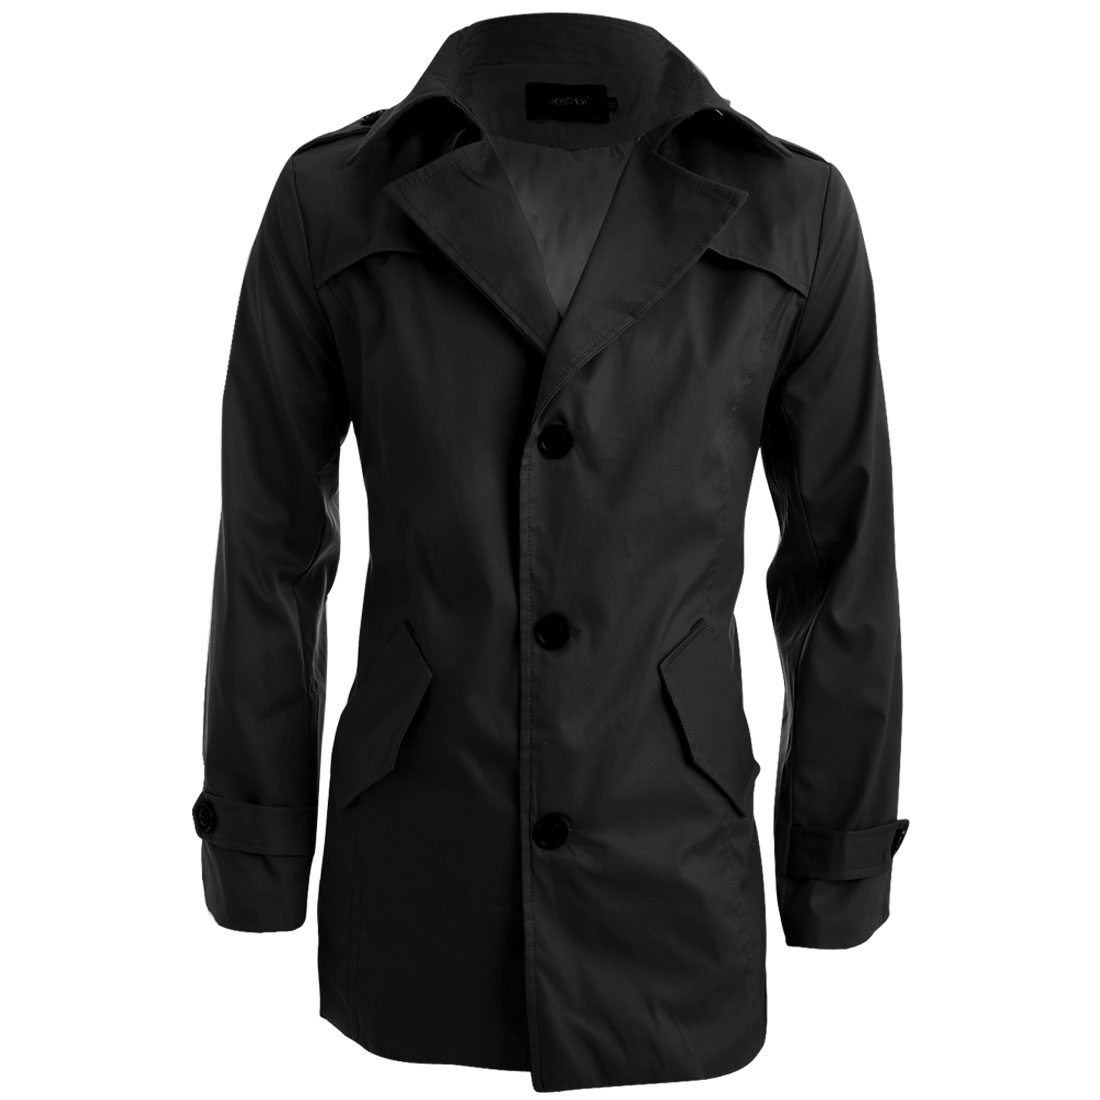 Man Long Sleeve Button-Tab Epaulets Black Autumn Trench Jacket M